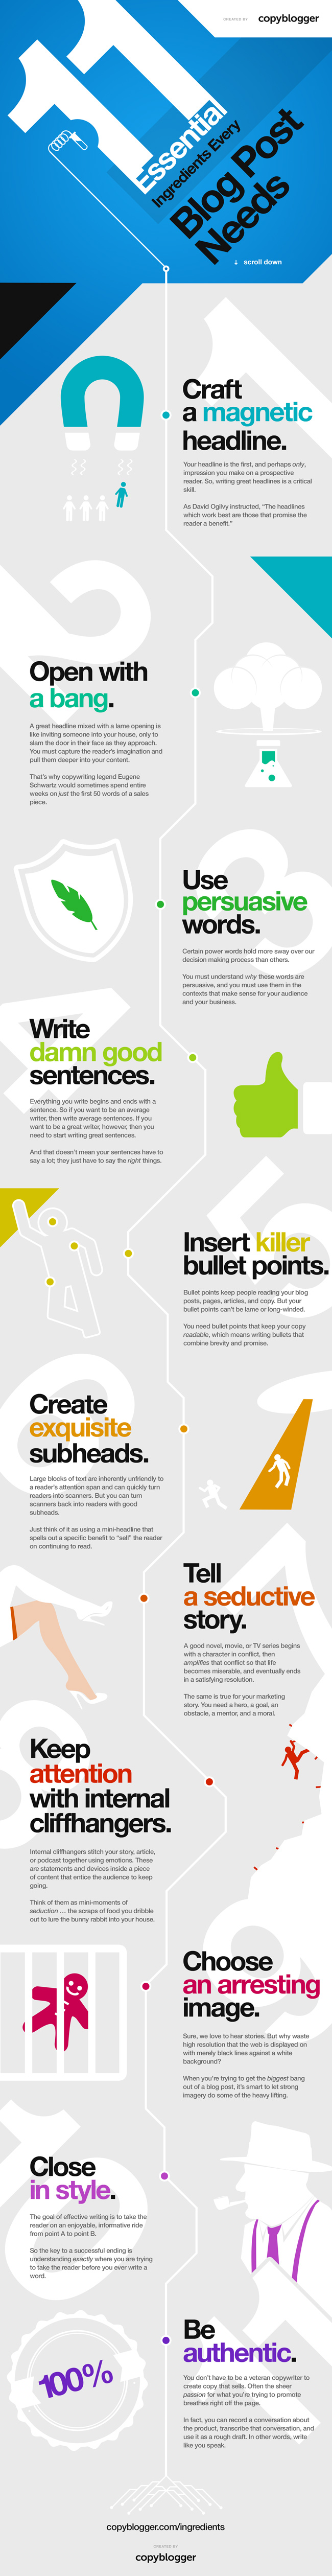 11 Essential Ingredients Every Blog Post Needs [Infographic]